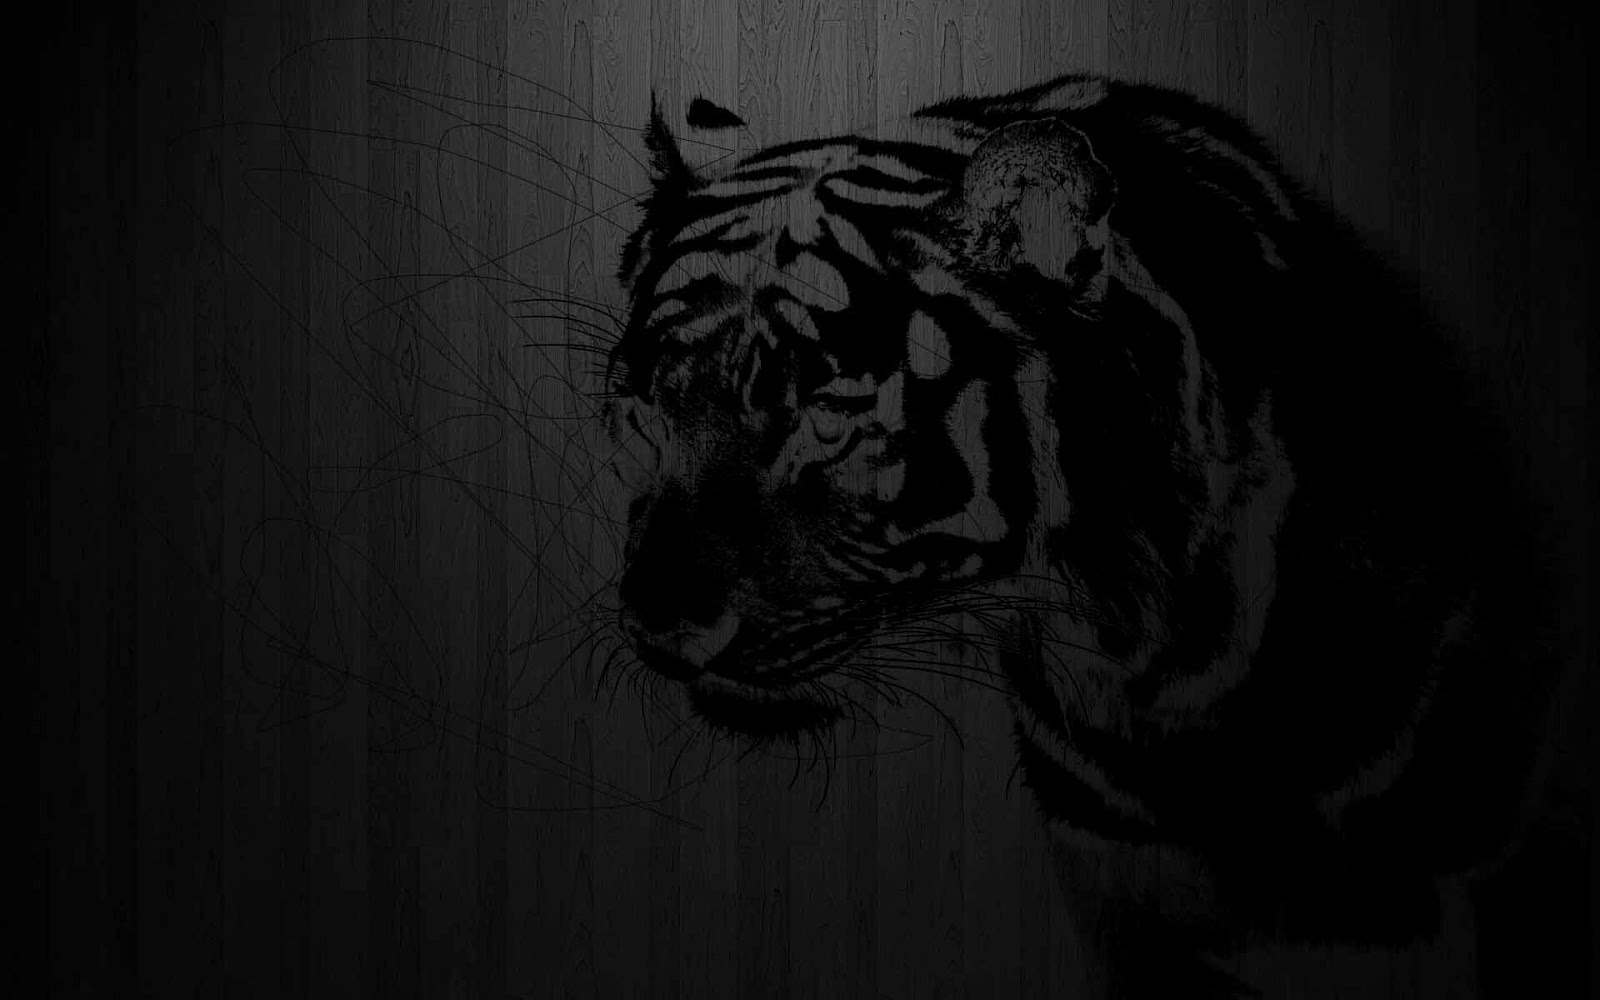 Black Color Wallpapers - 500 Collection HD Wallpaper